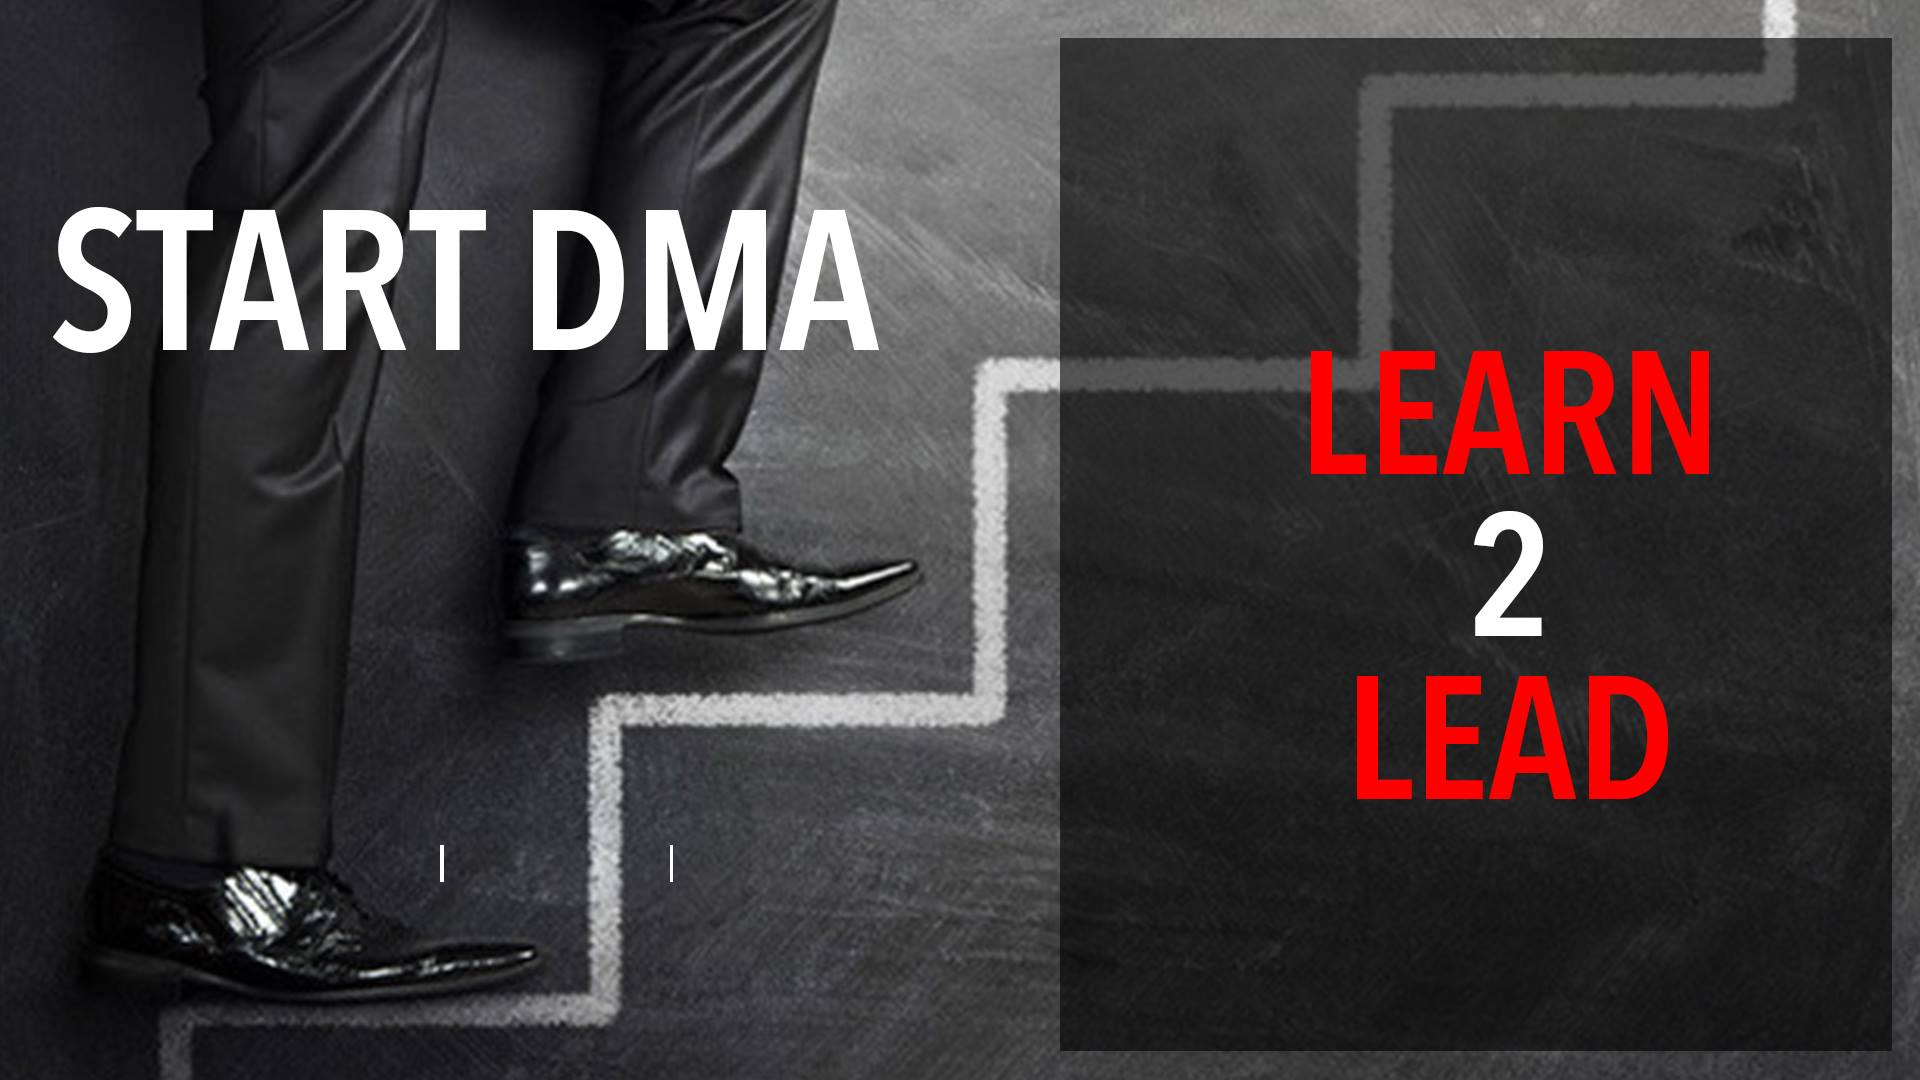 start-dma-learn-2-lead